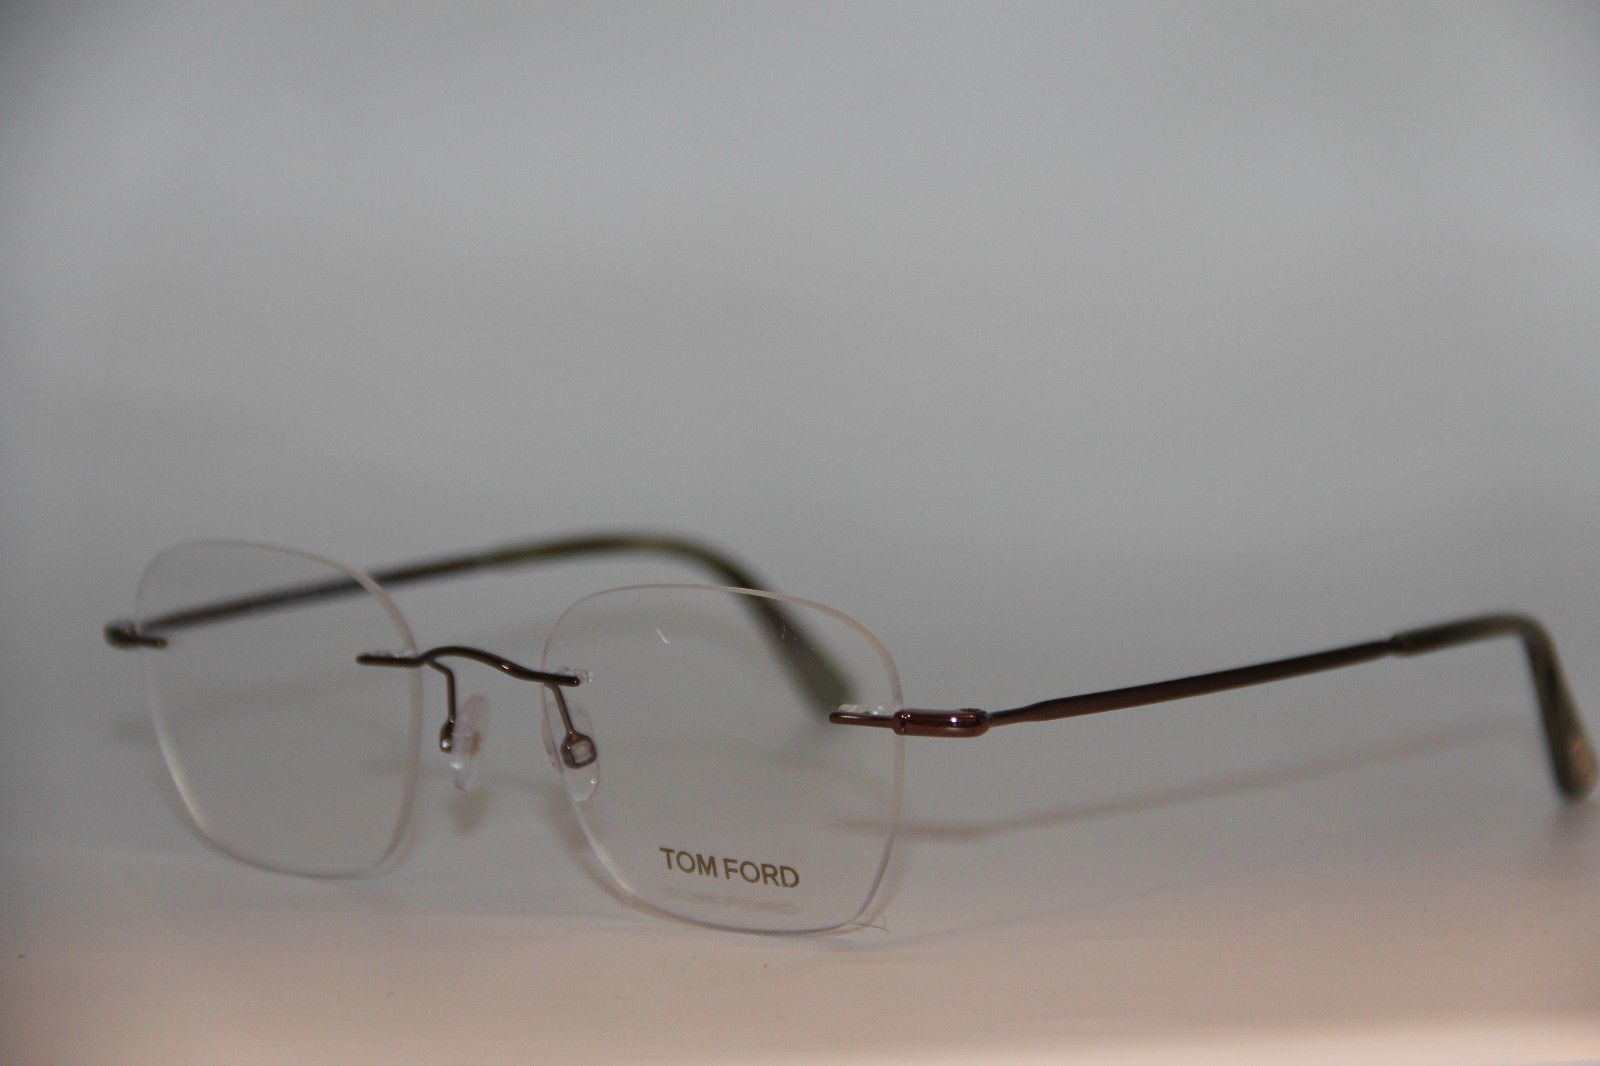 791653cb00a5e New Tom Ford Tf 5341 036 Brown Eyeglasses and 50 similar items